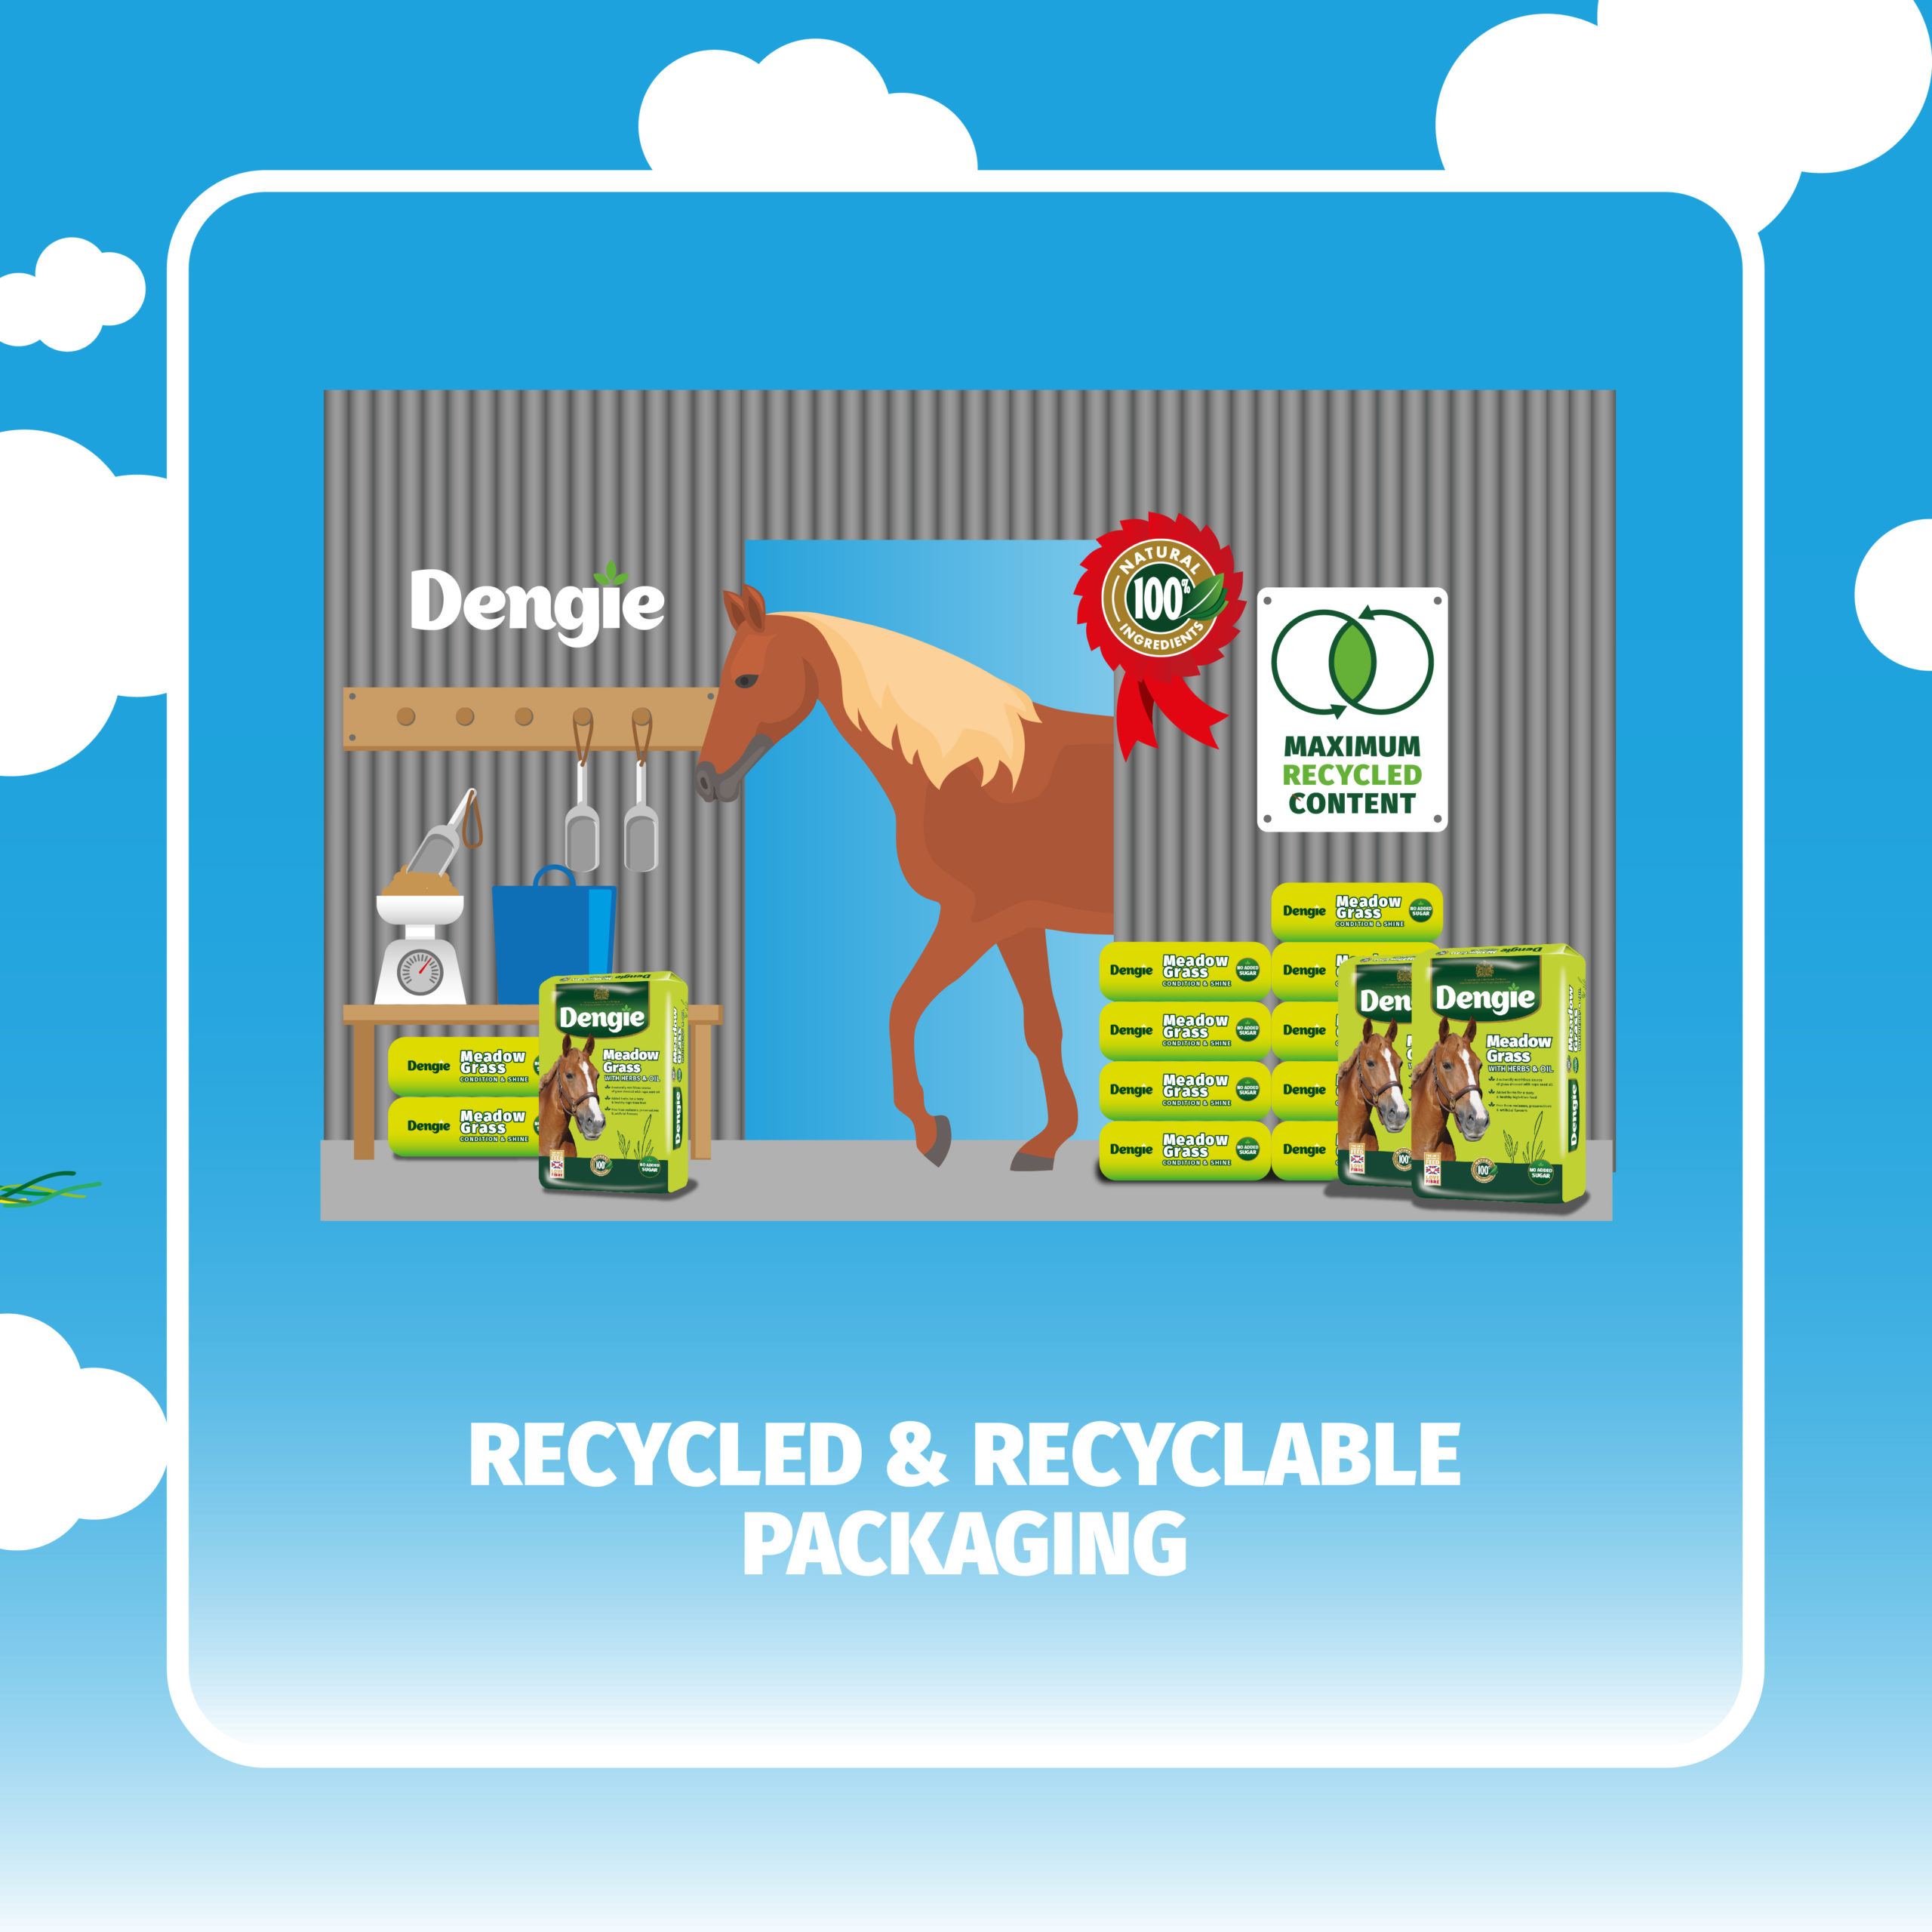 Recycled and recyclable packaging